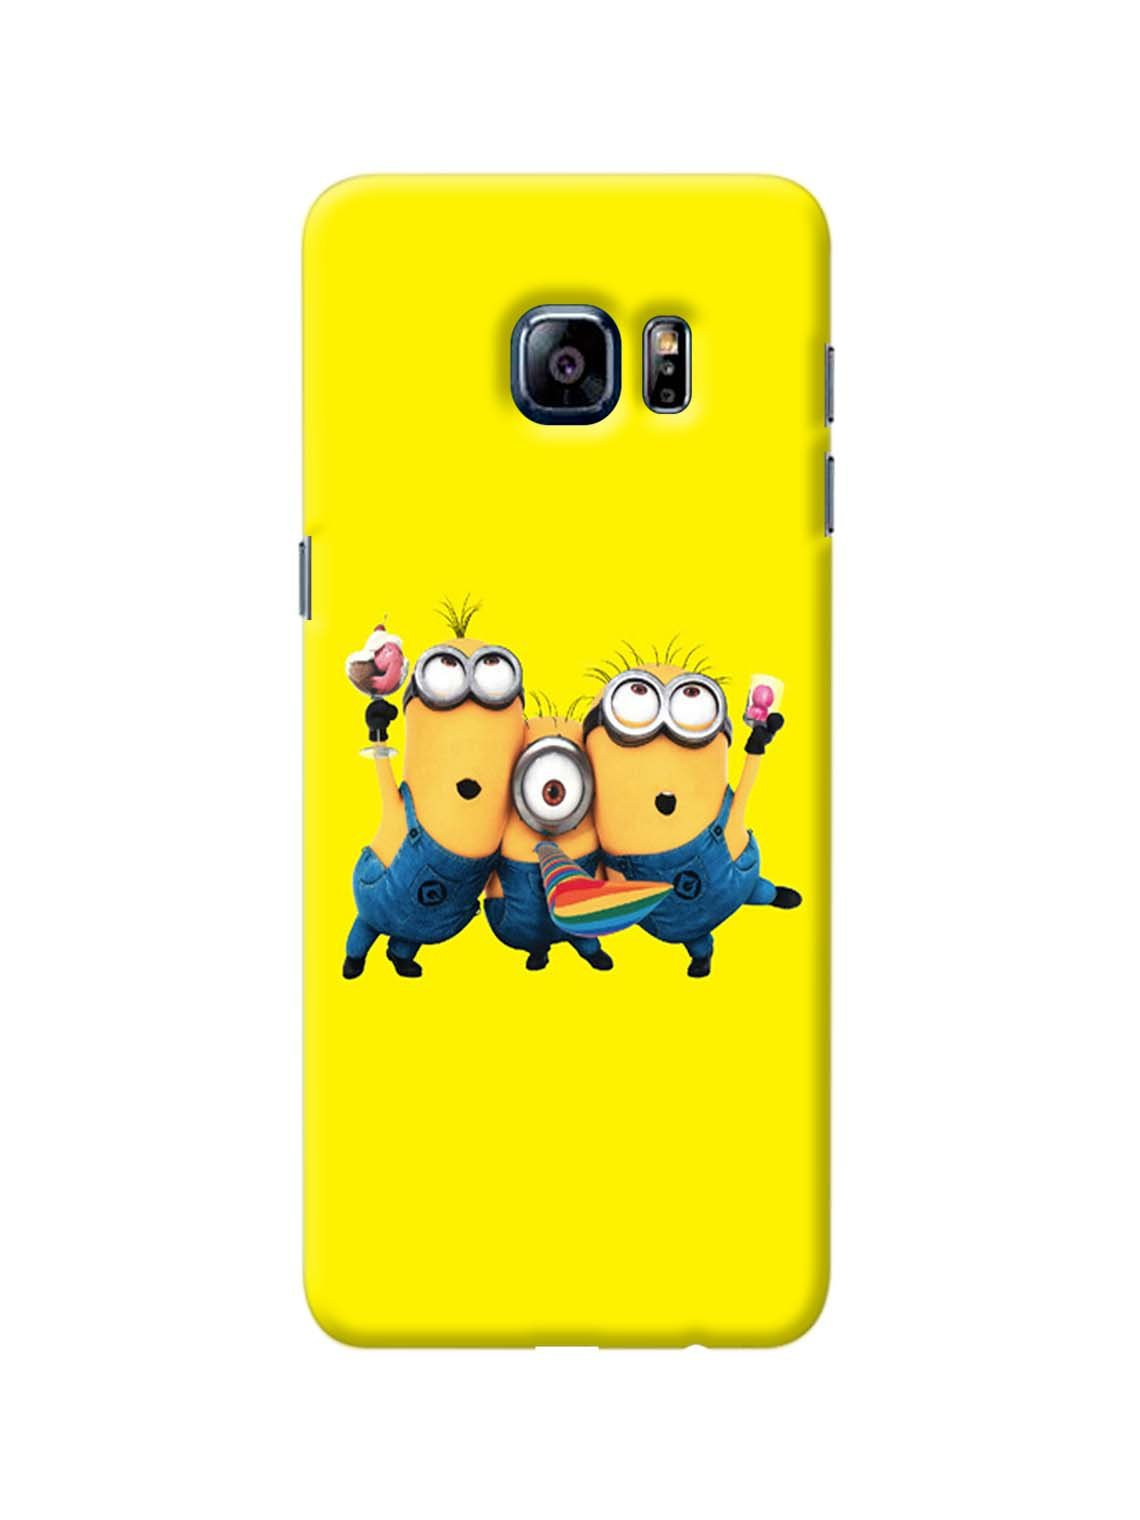 wholesale dealer 9571a ff9be Minion Party Printed Mobile Case For GALAXY S6 EDGE PLUS